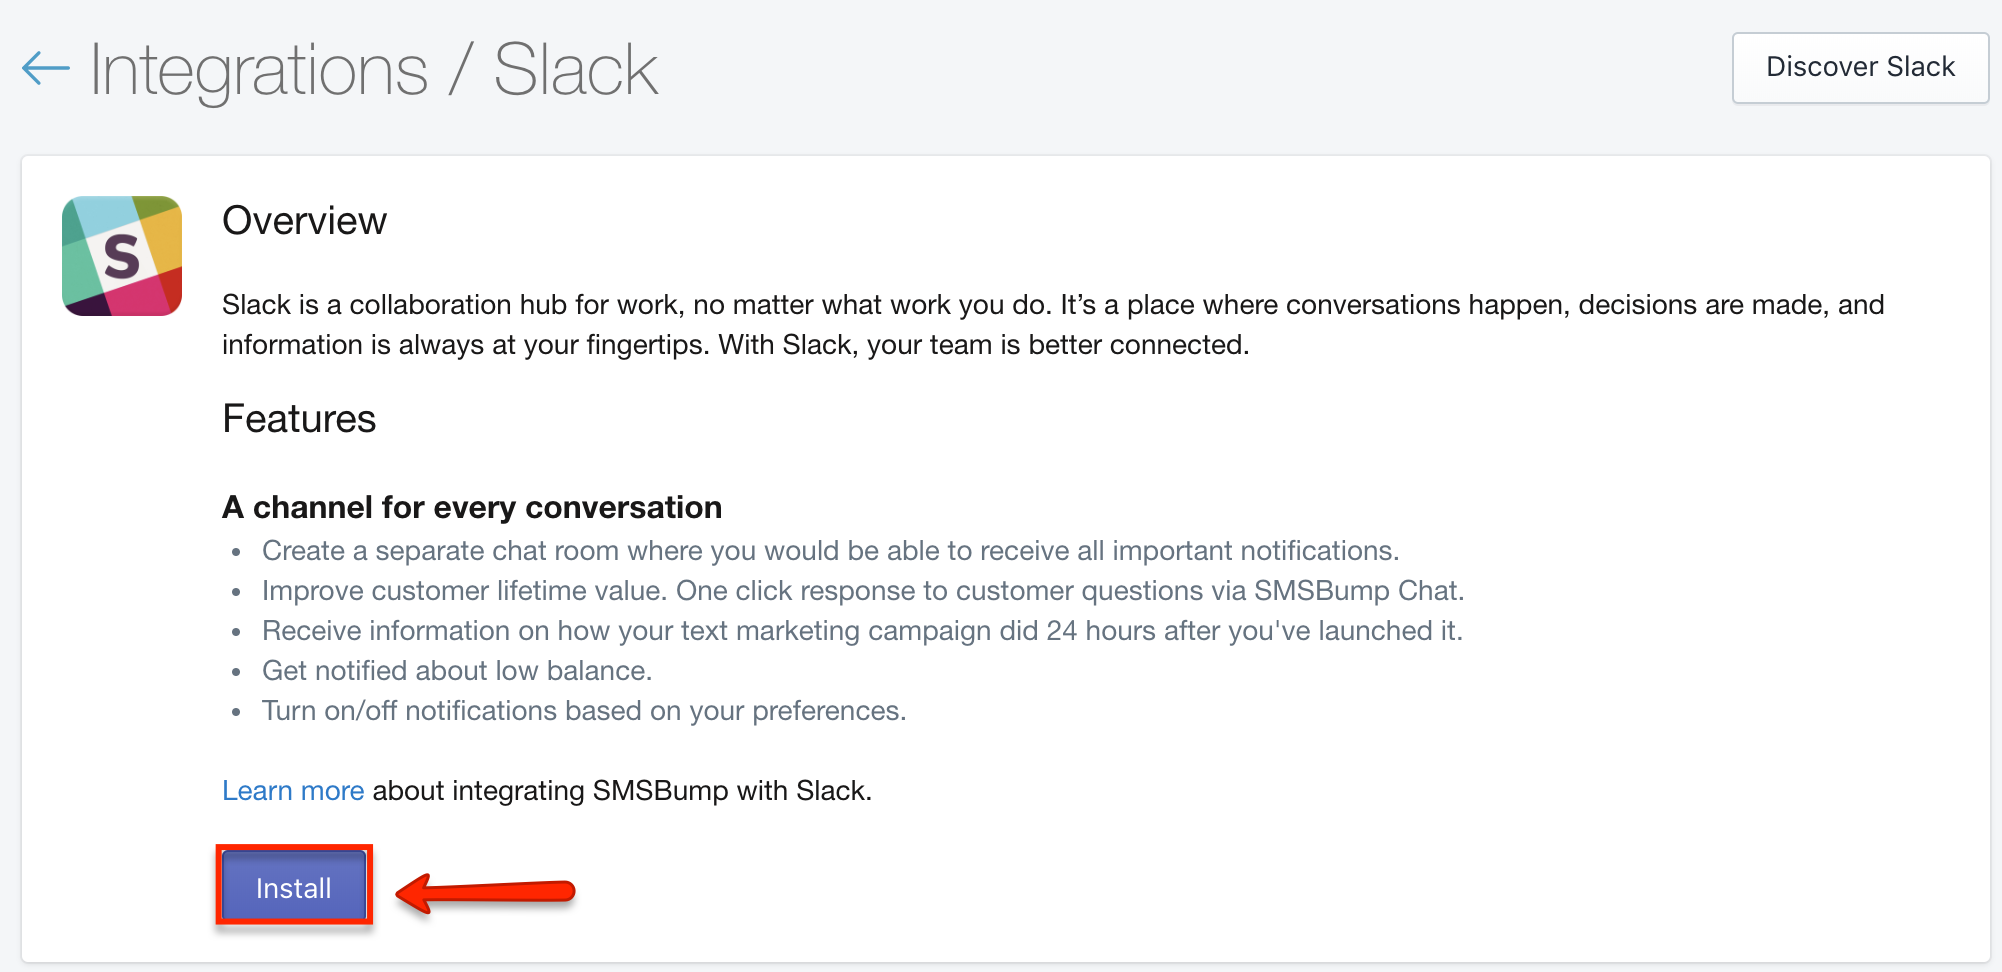 Knowledge Base | How to Install and Configure Slack in SMSBump